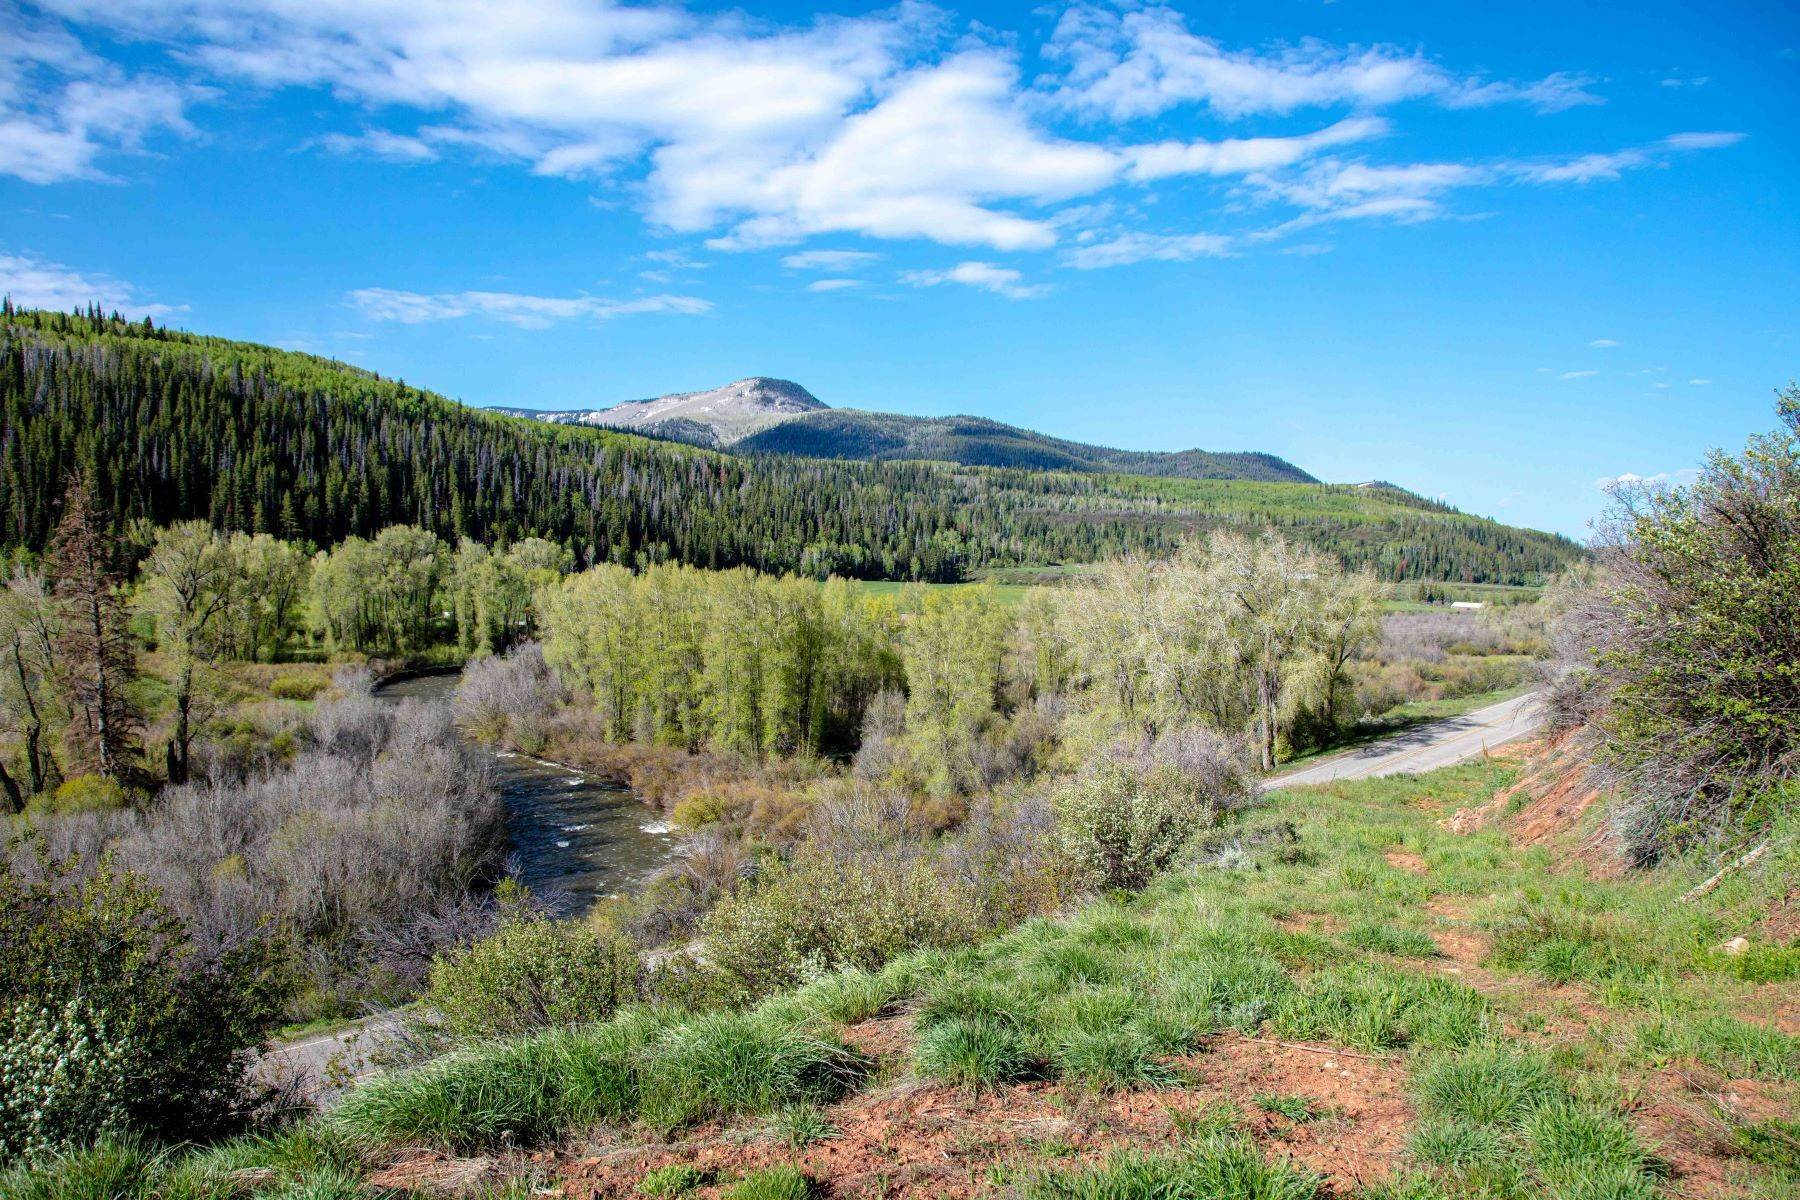 Property for Sale at White River Valley Acreage in Meeker County Road 8 Meeker, Colorado 81641 United States